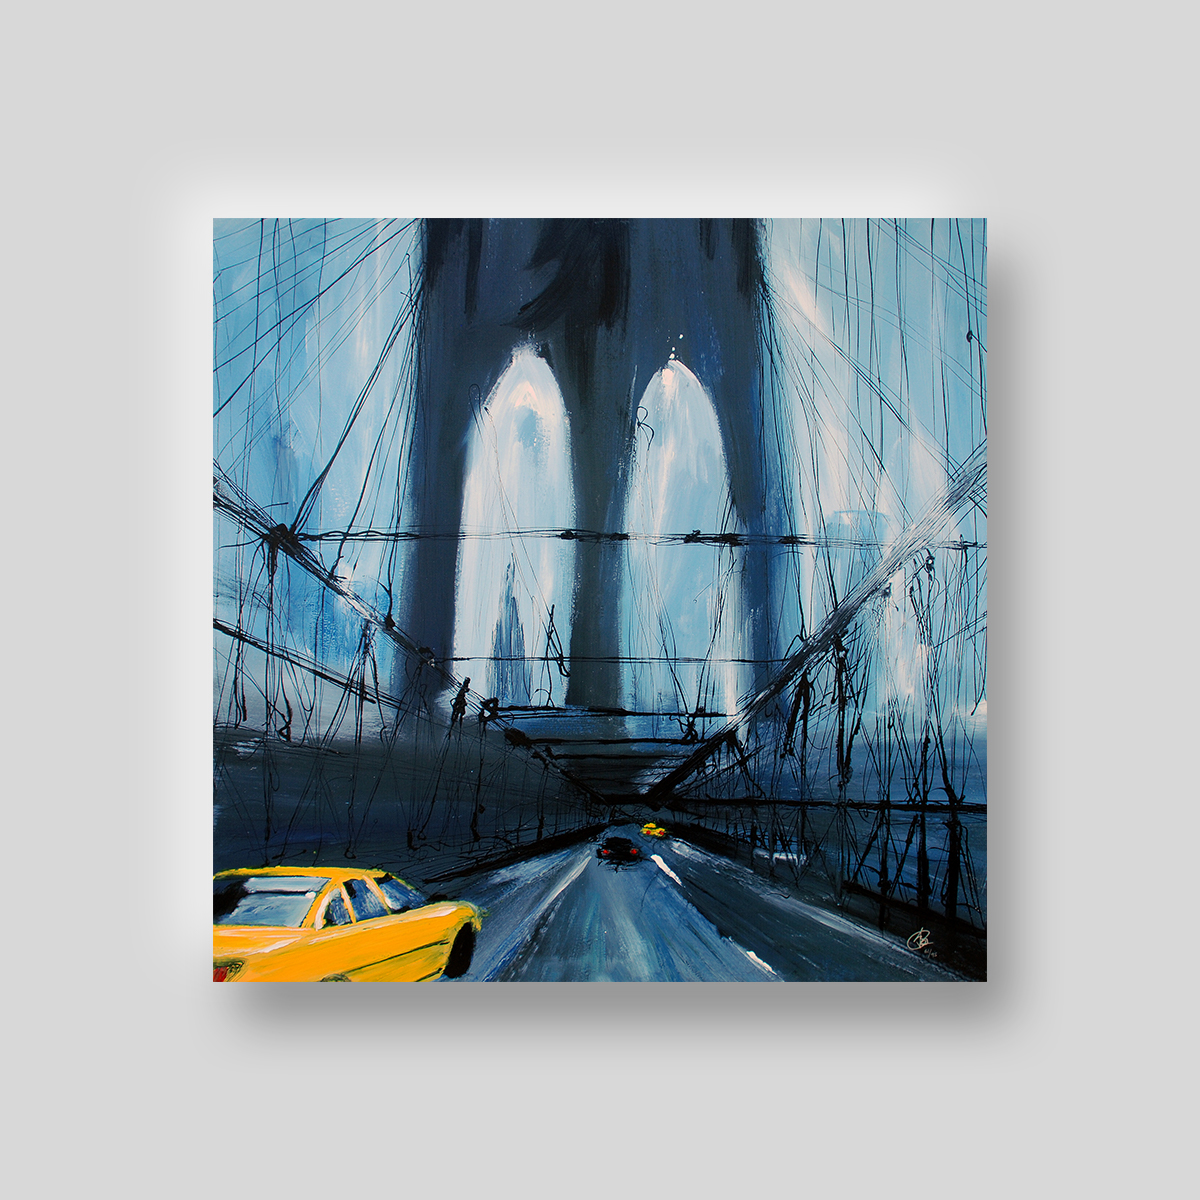 City of Dreams by Paul Kenton, UK contemporary cityscape artist, a limited edition print from his New York Collection